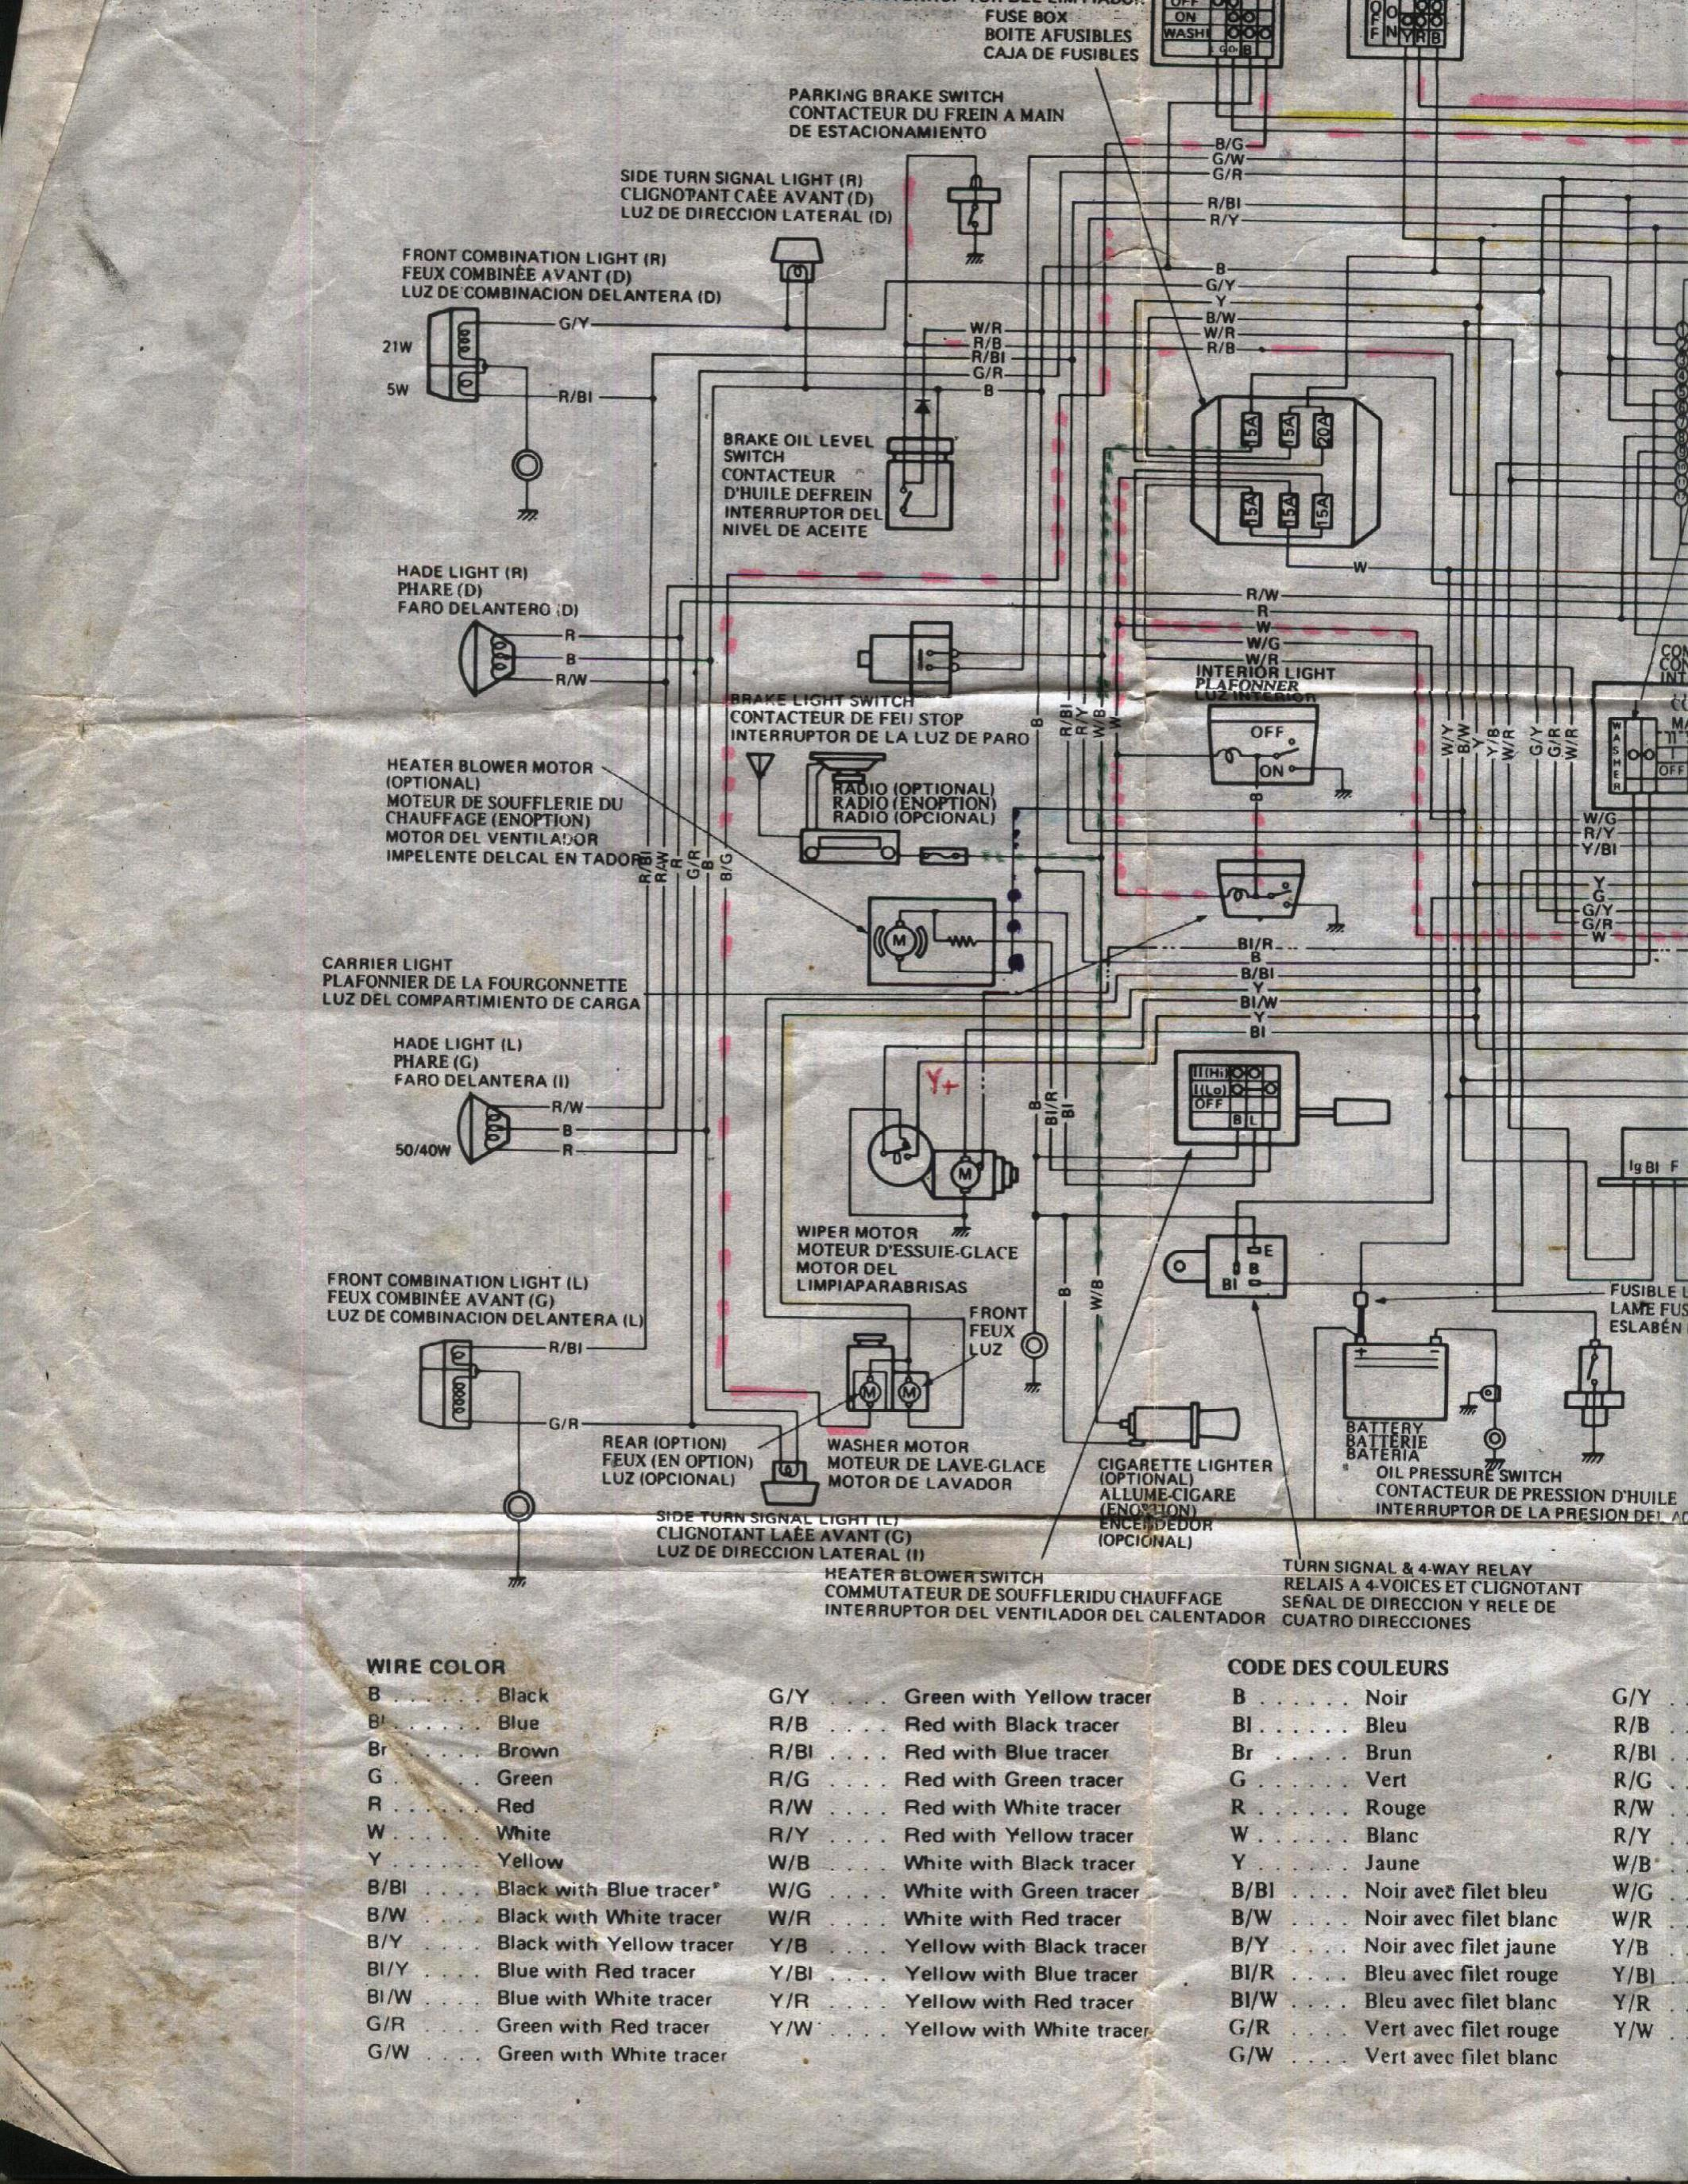 siemens cpu 1215c wiring diagram wiring diagram cpu 1215c wiring diagram diagrams blender pot wiring diagrams left handed fender